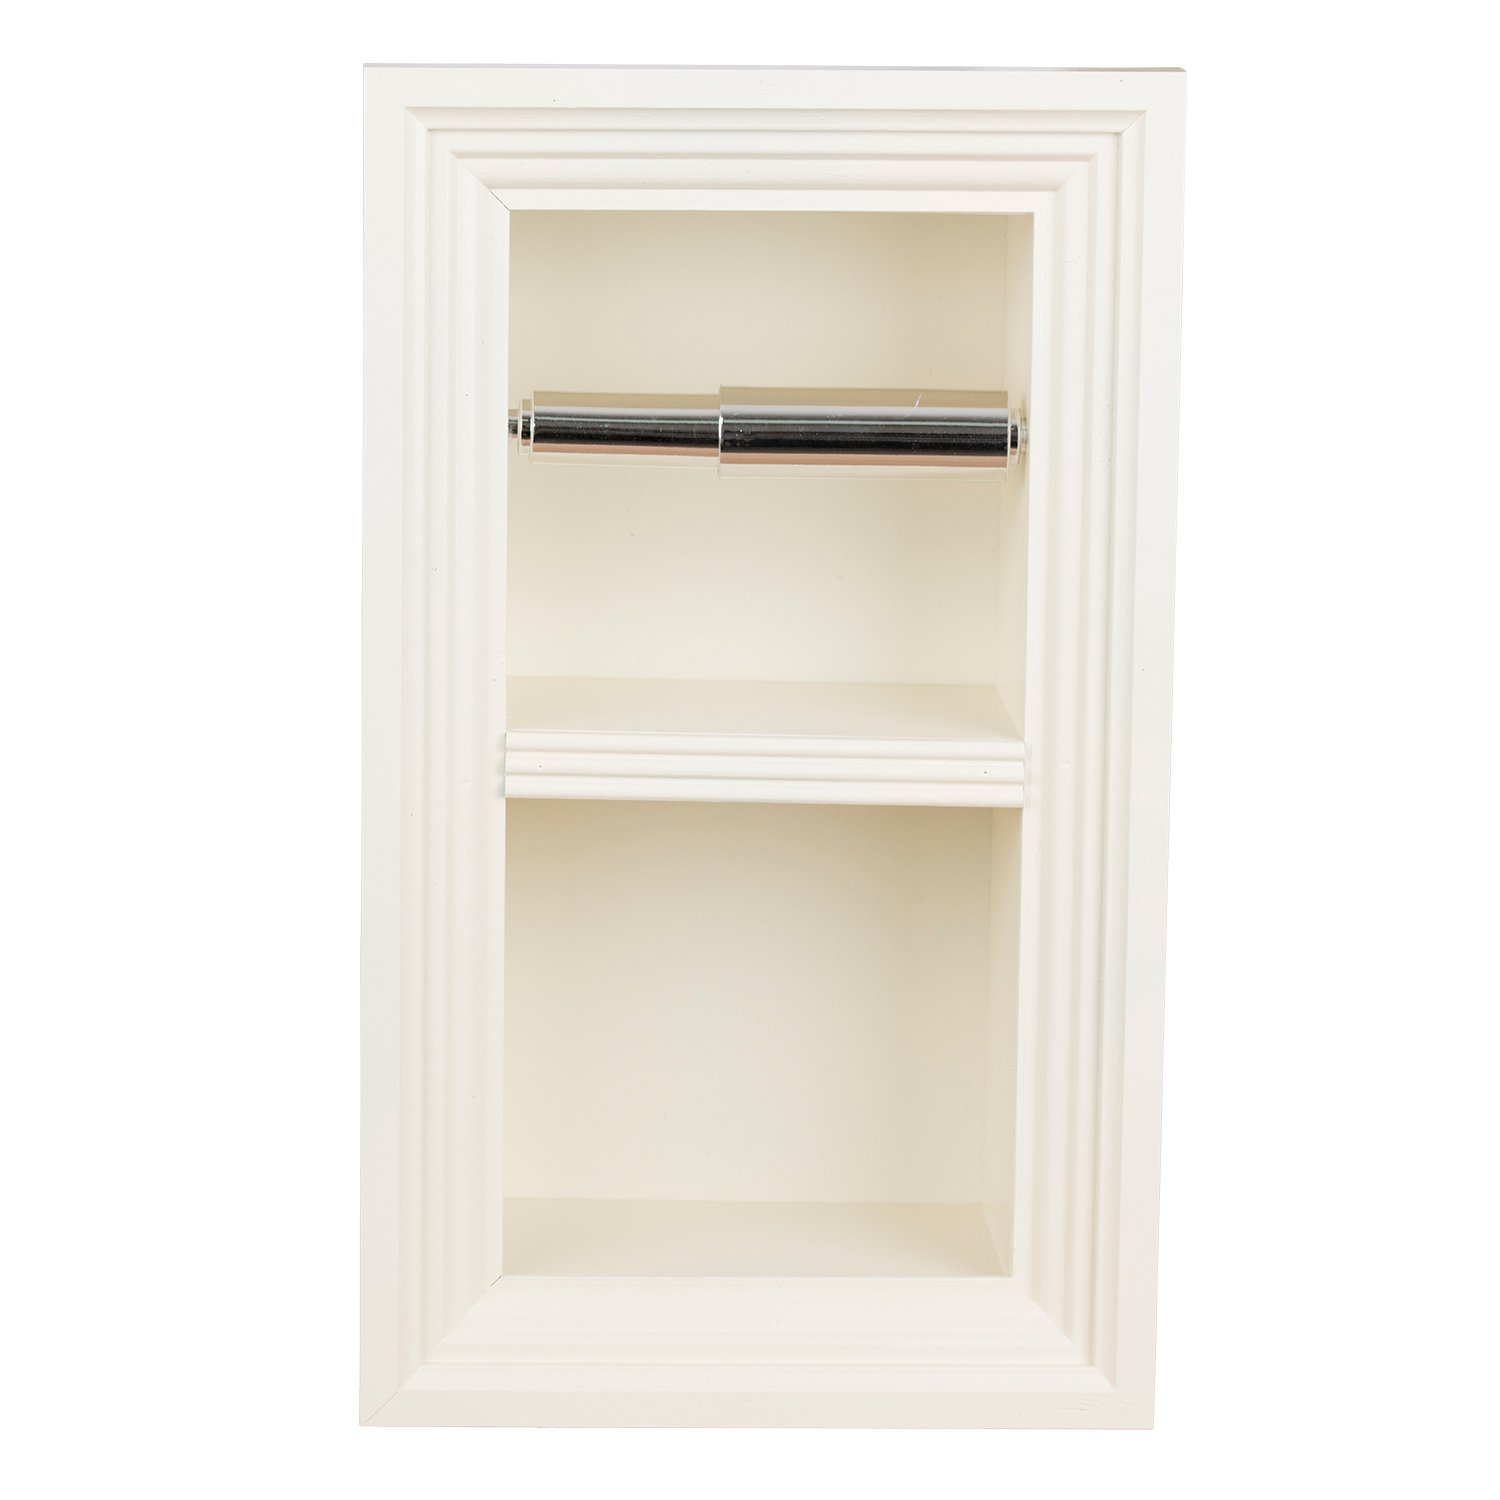 Florida Breeze Cabinets Zephyr Recessed Toilet Paper Holder with Spare Roll, Antique White